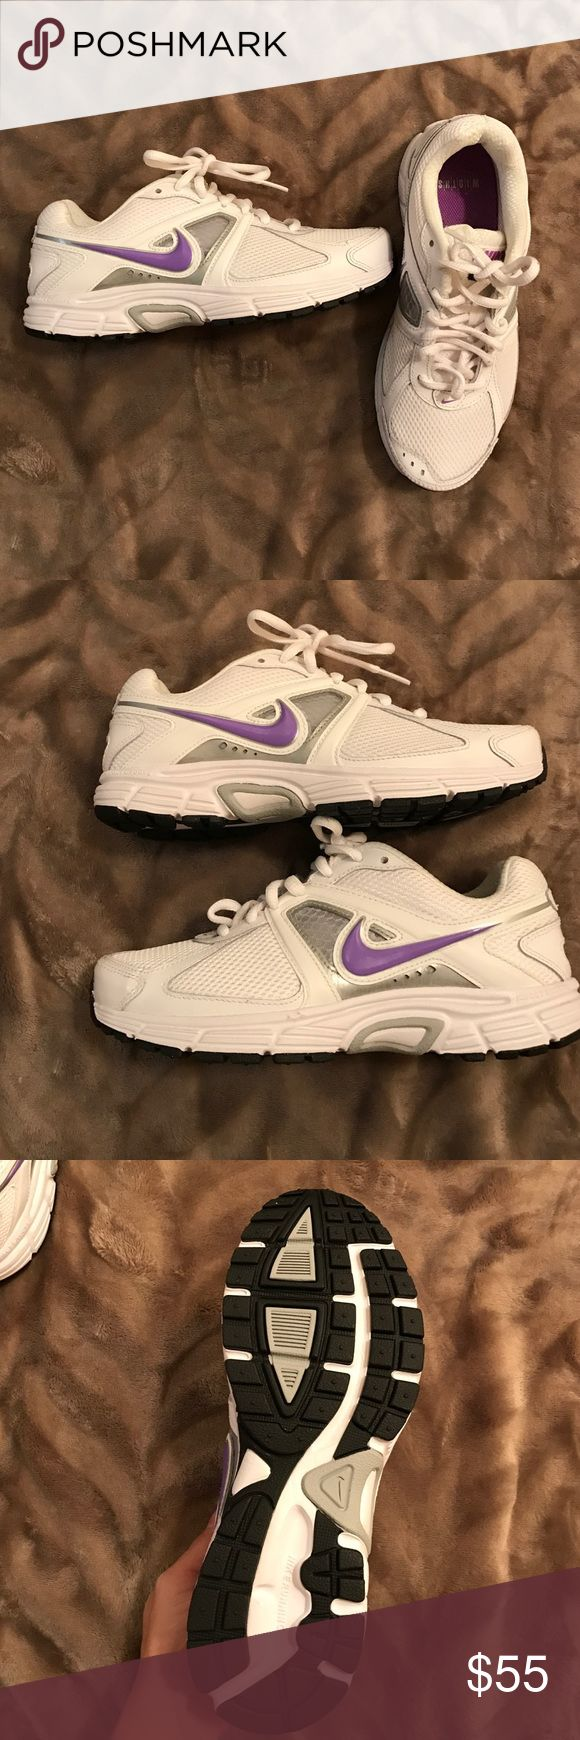 Nike dart 9 running women's sneakers Nike running sneakers .. never worn .. NWOT it was an impulse buy and have had them for two years just sitting in my closet lol plus I tried them on and they're too big for me!!  thanks for looking!! Nike Shoes Sneakers